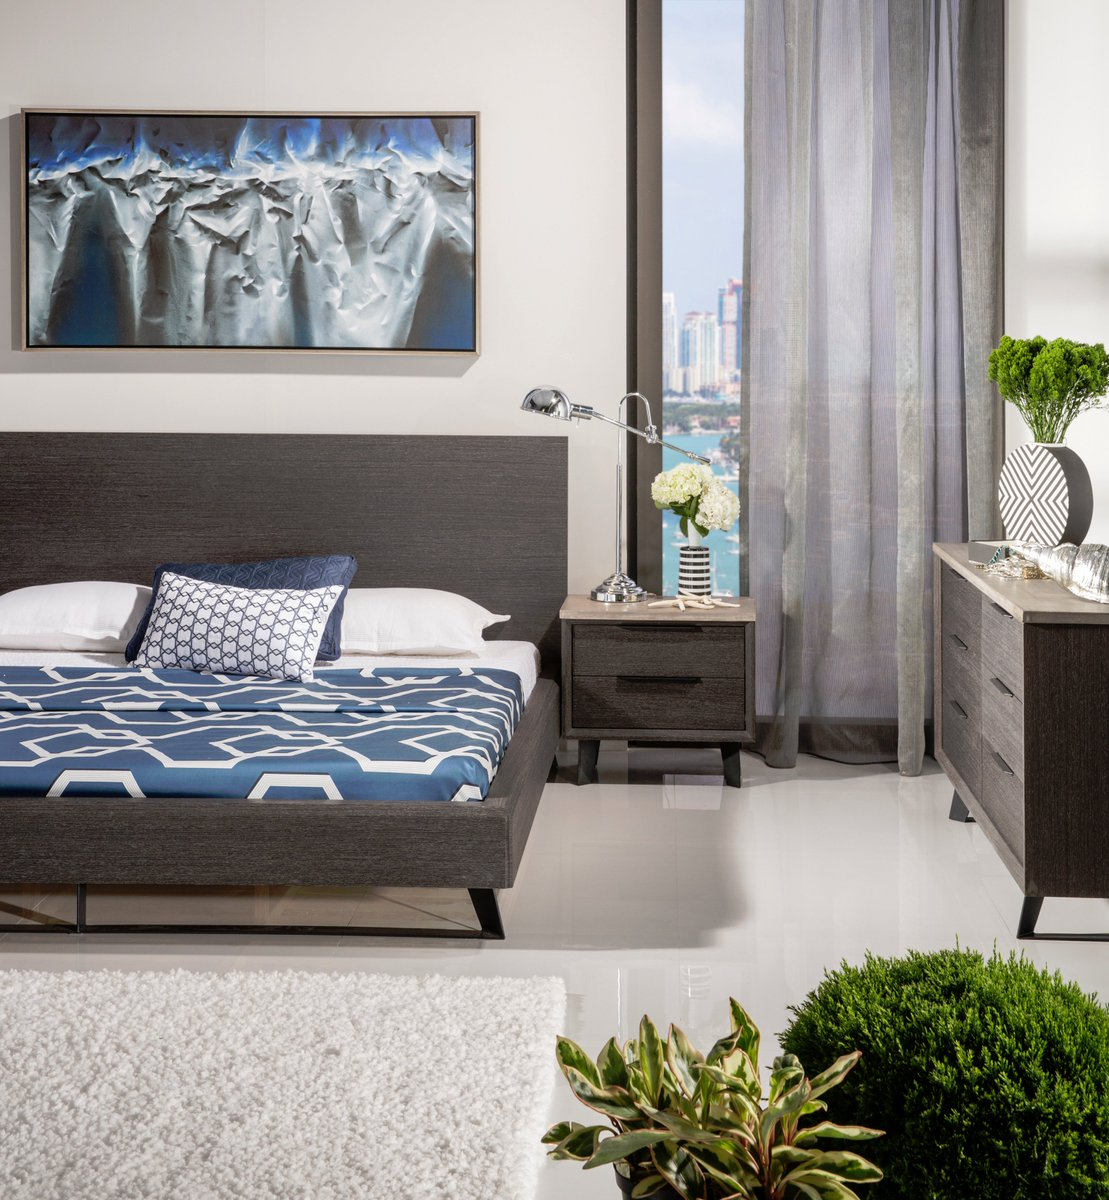 El Dorado Furniture On Twitter If Sleeping In Is Your Favorite Then The Ghost Bedroom Set Is Your 1 Enabler This Industrial Style Bed Is Perfect For Anyone Trying To